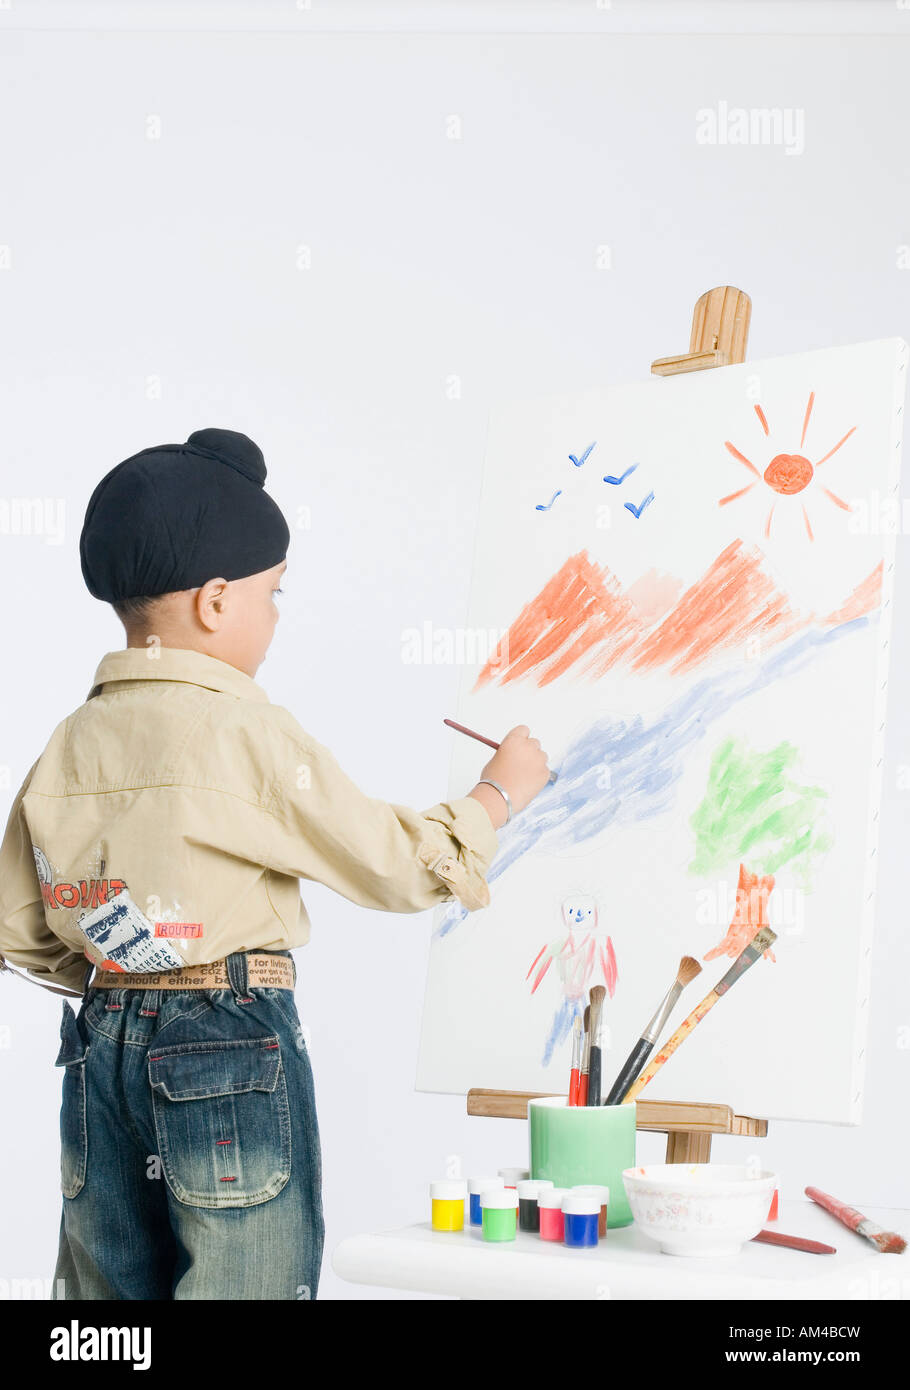 Rear view of a boy painting on an artist's canvas - Stock Image